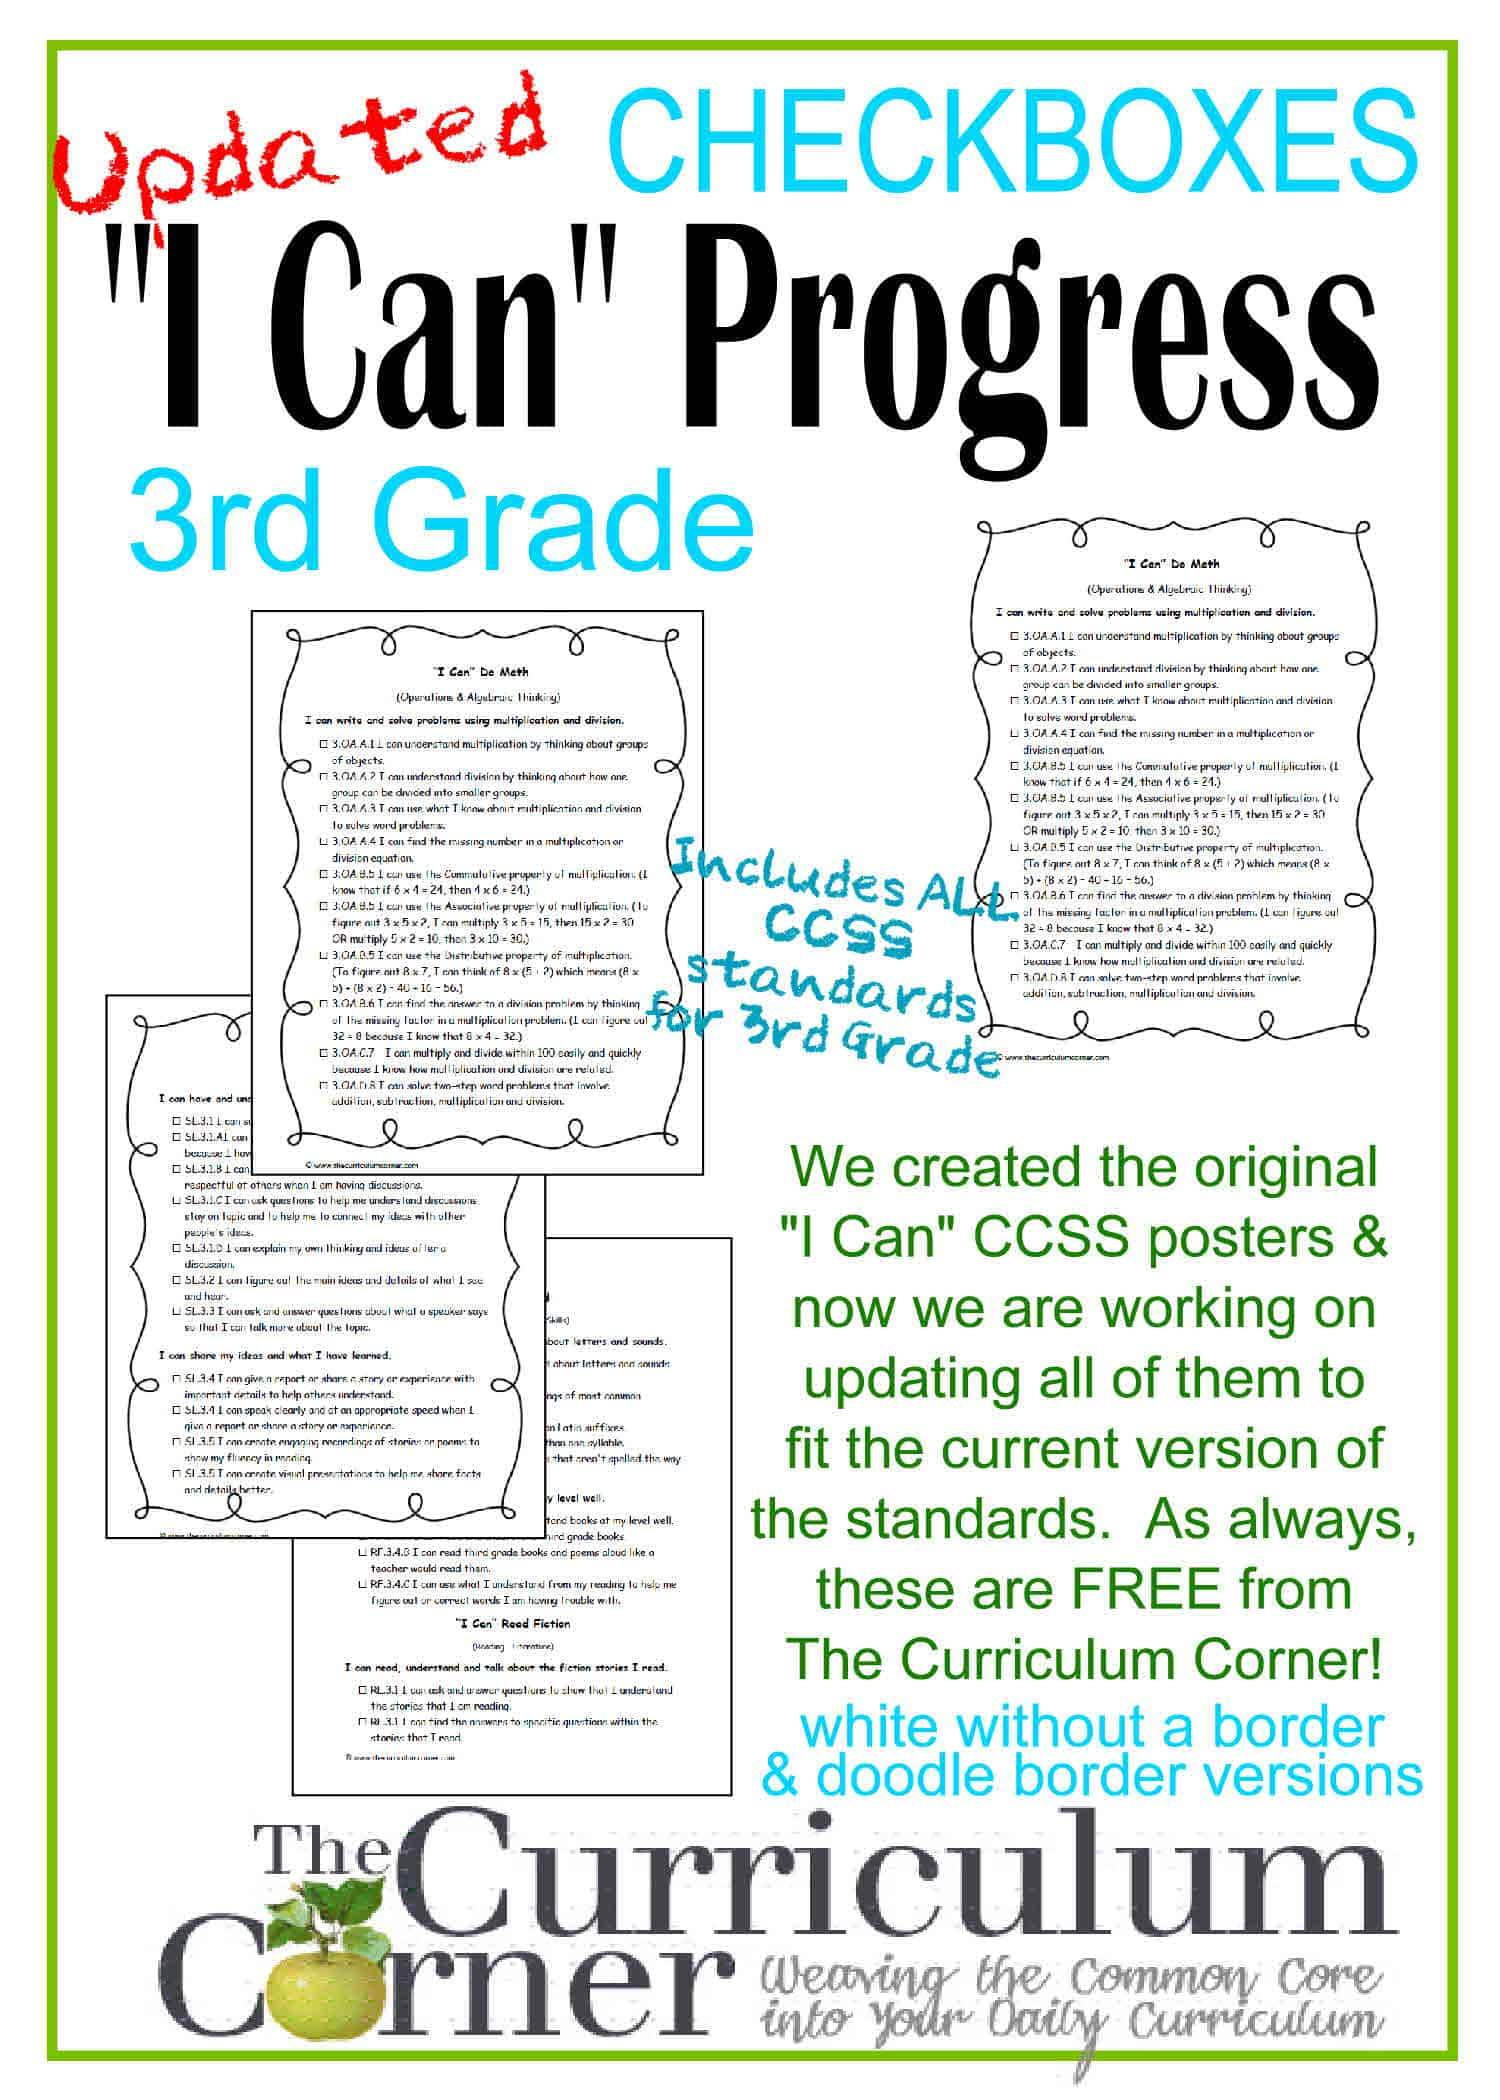 Updated 3rd Grade I Can Ccss Statements Progress Checkboxes